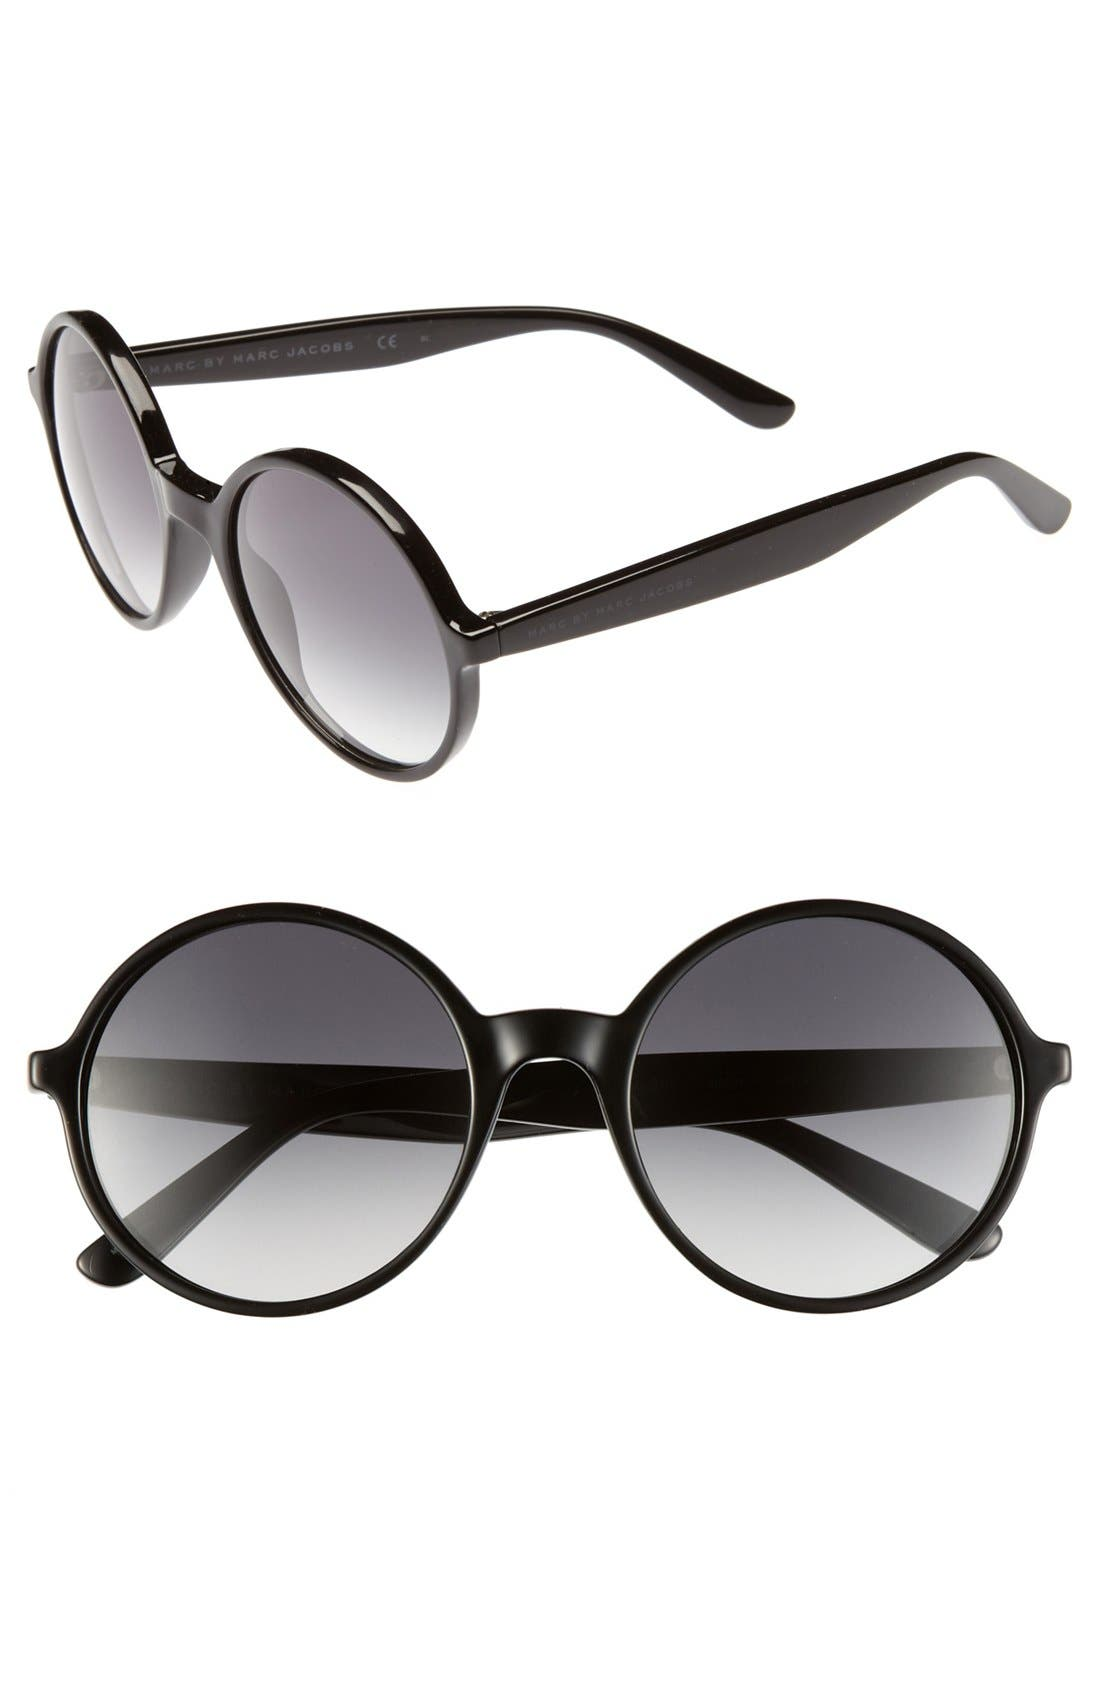 MARC BY MARC JACOBS, 54mm Retro Sunglasses, Main thumbnail 1, color, 001